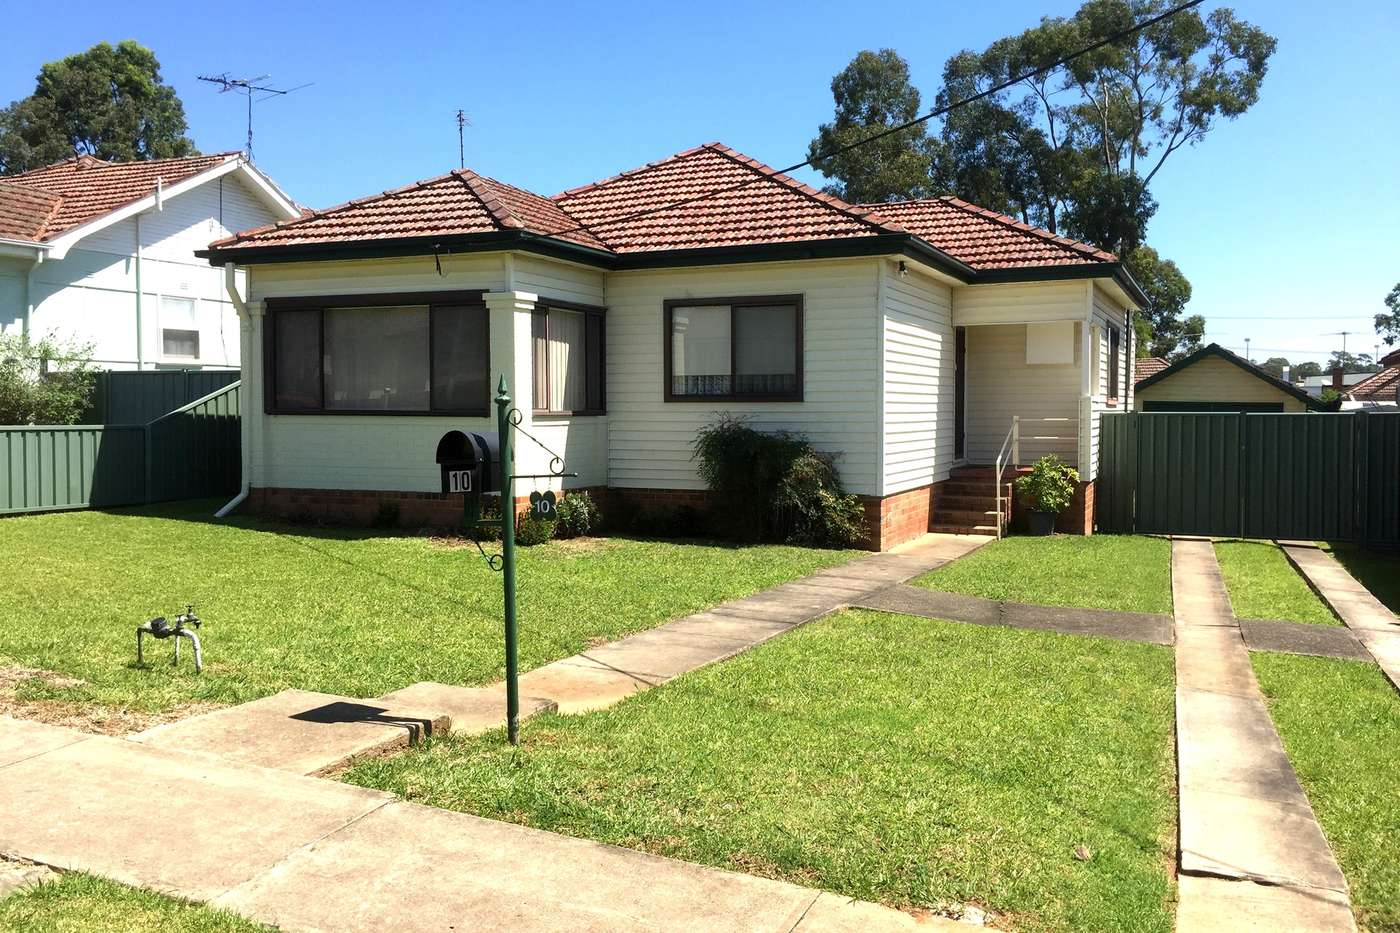 Main view of Homely house listing, 10 Doncaster Avenue, Narellan, NSW 2567